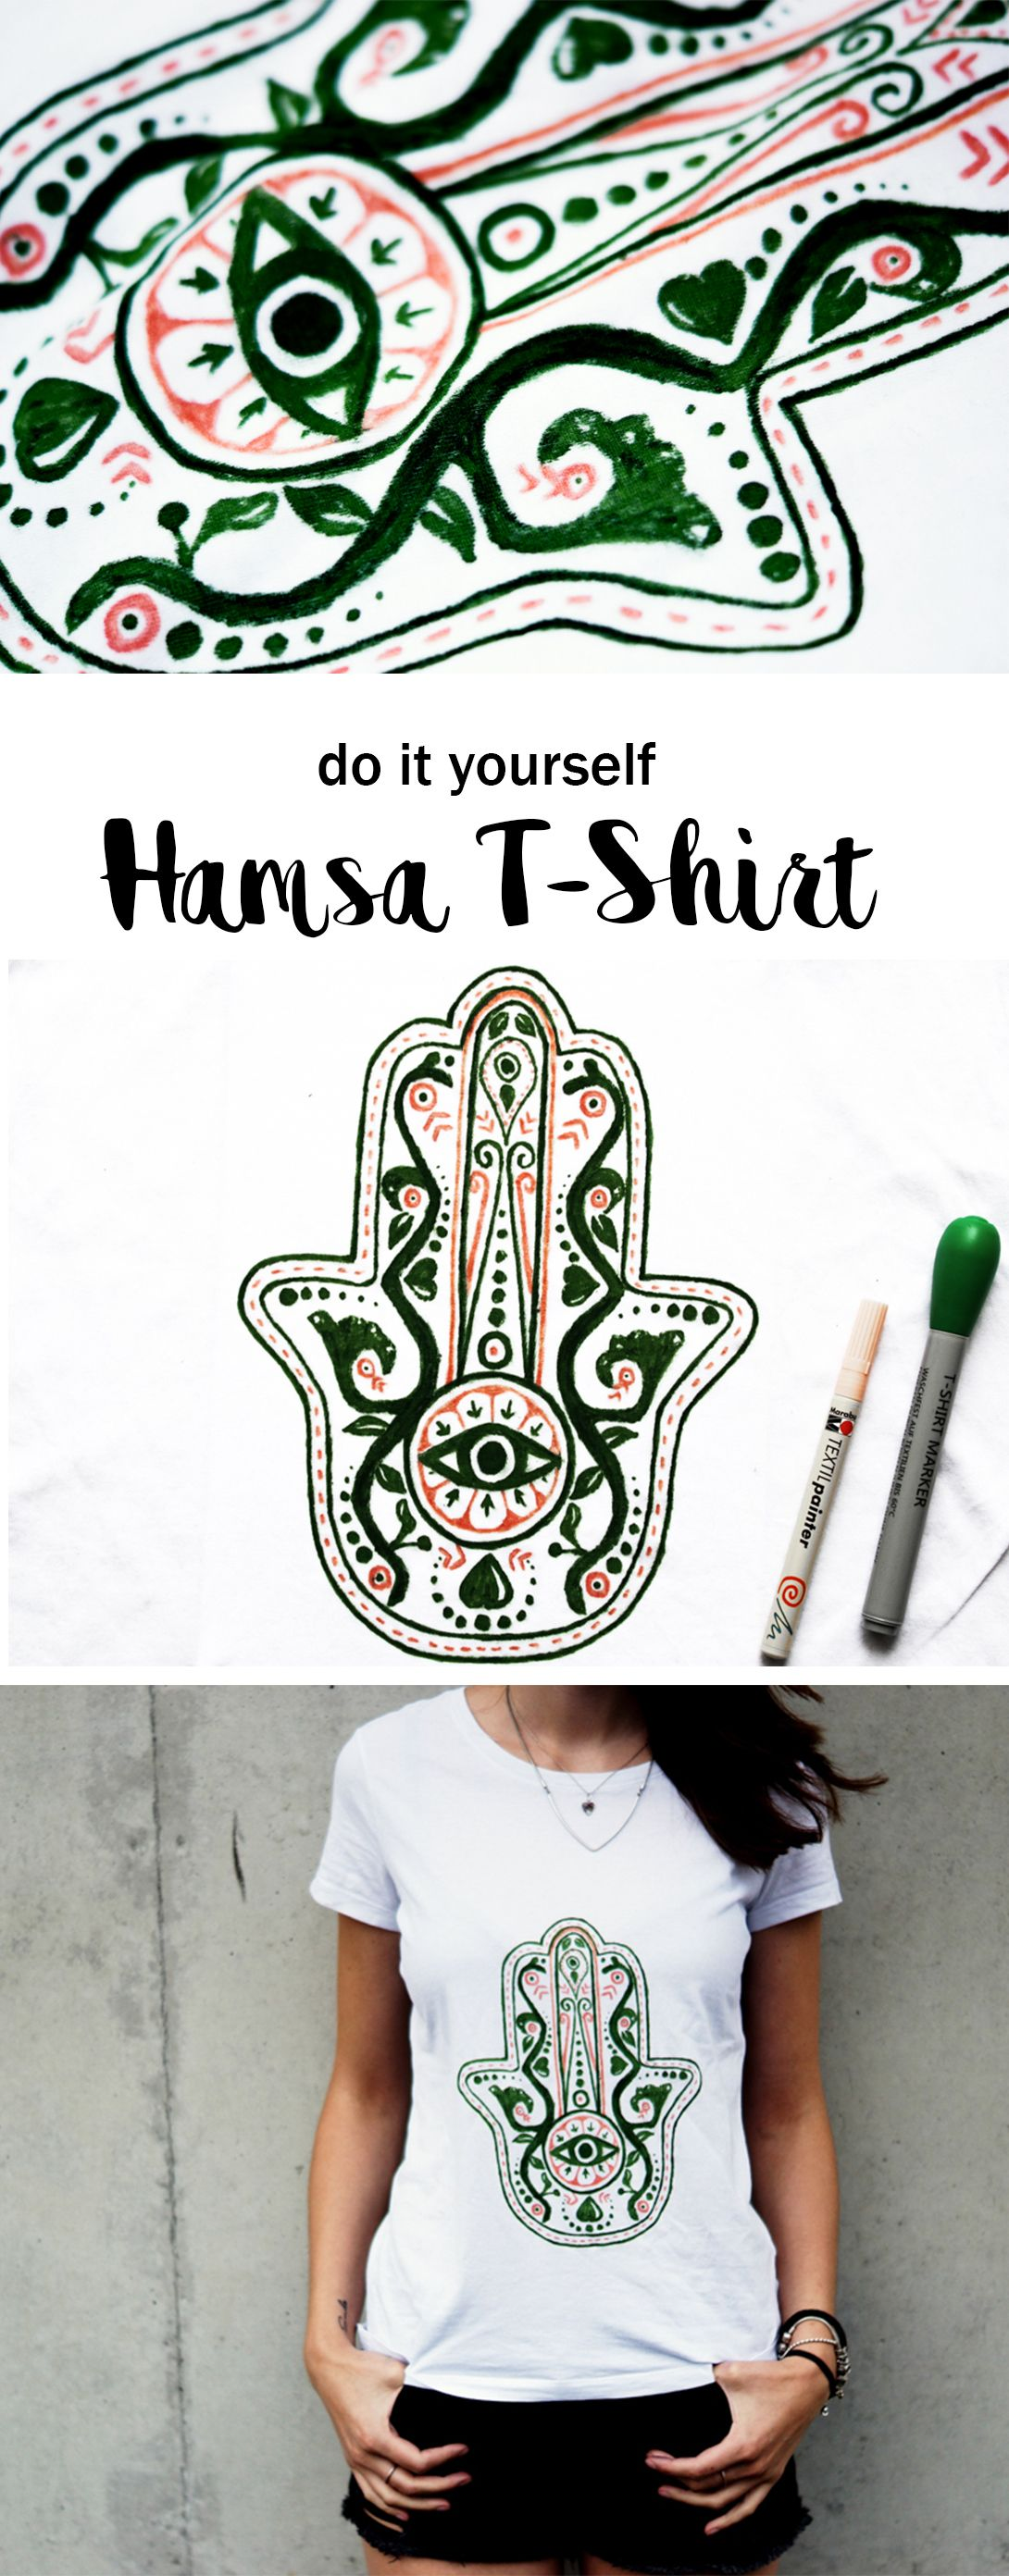 diy hamsa shirt f r vernetzteuch diy pinterest kleidung t shirt und shirts. Black Bedroom Furniture Sets. Home Design Ideas